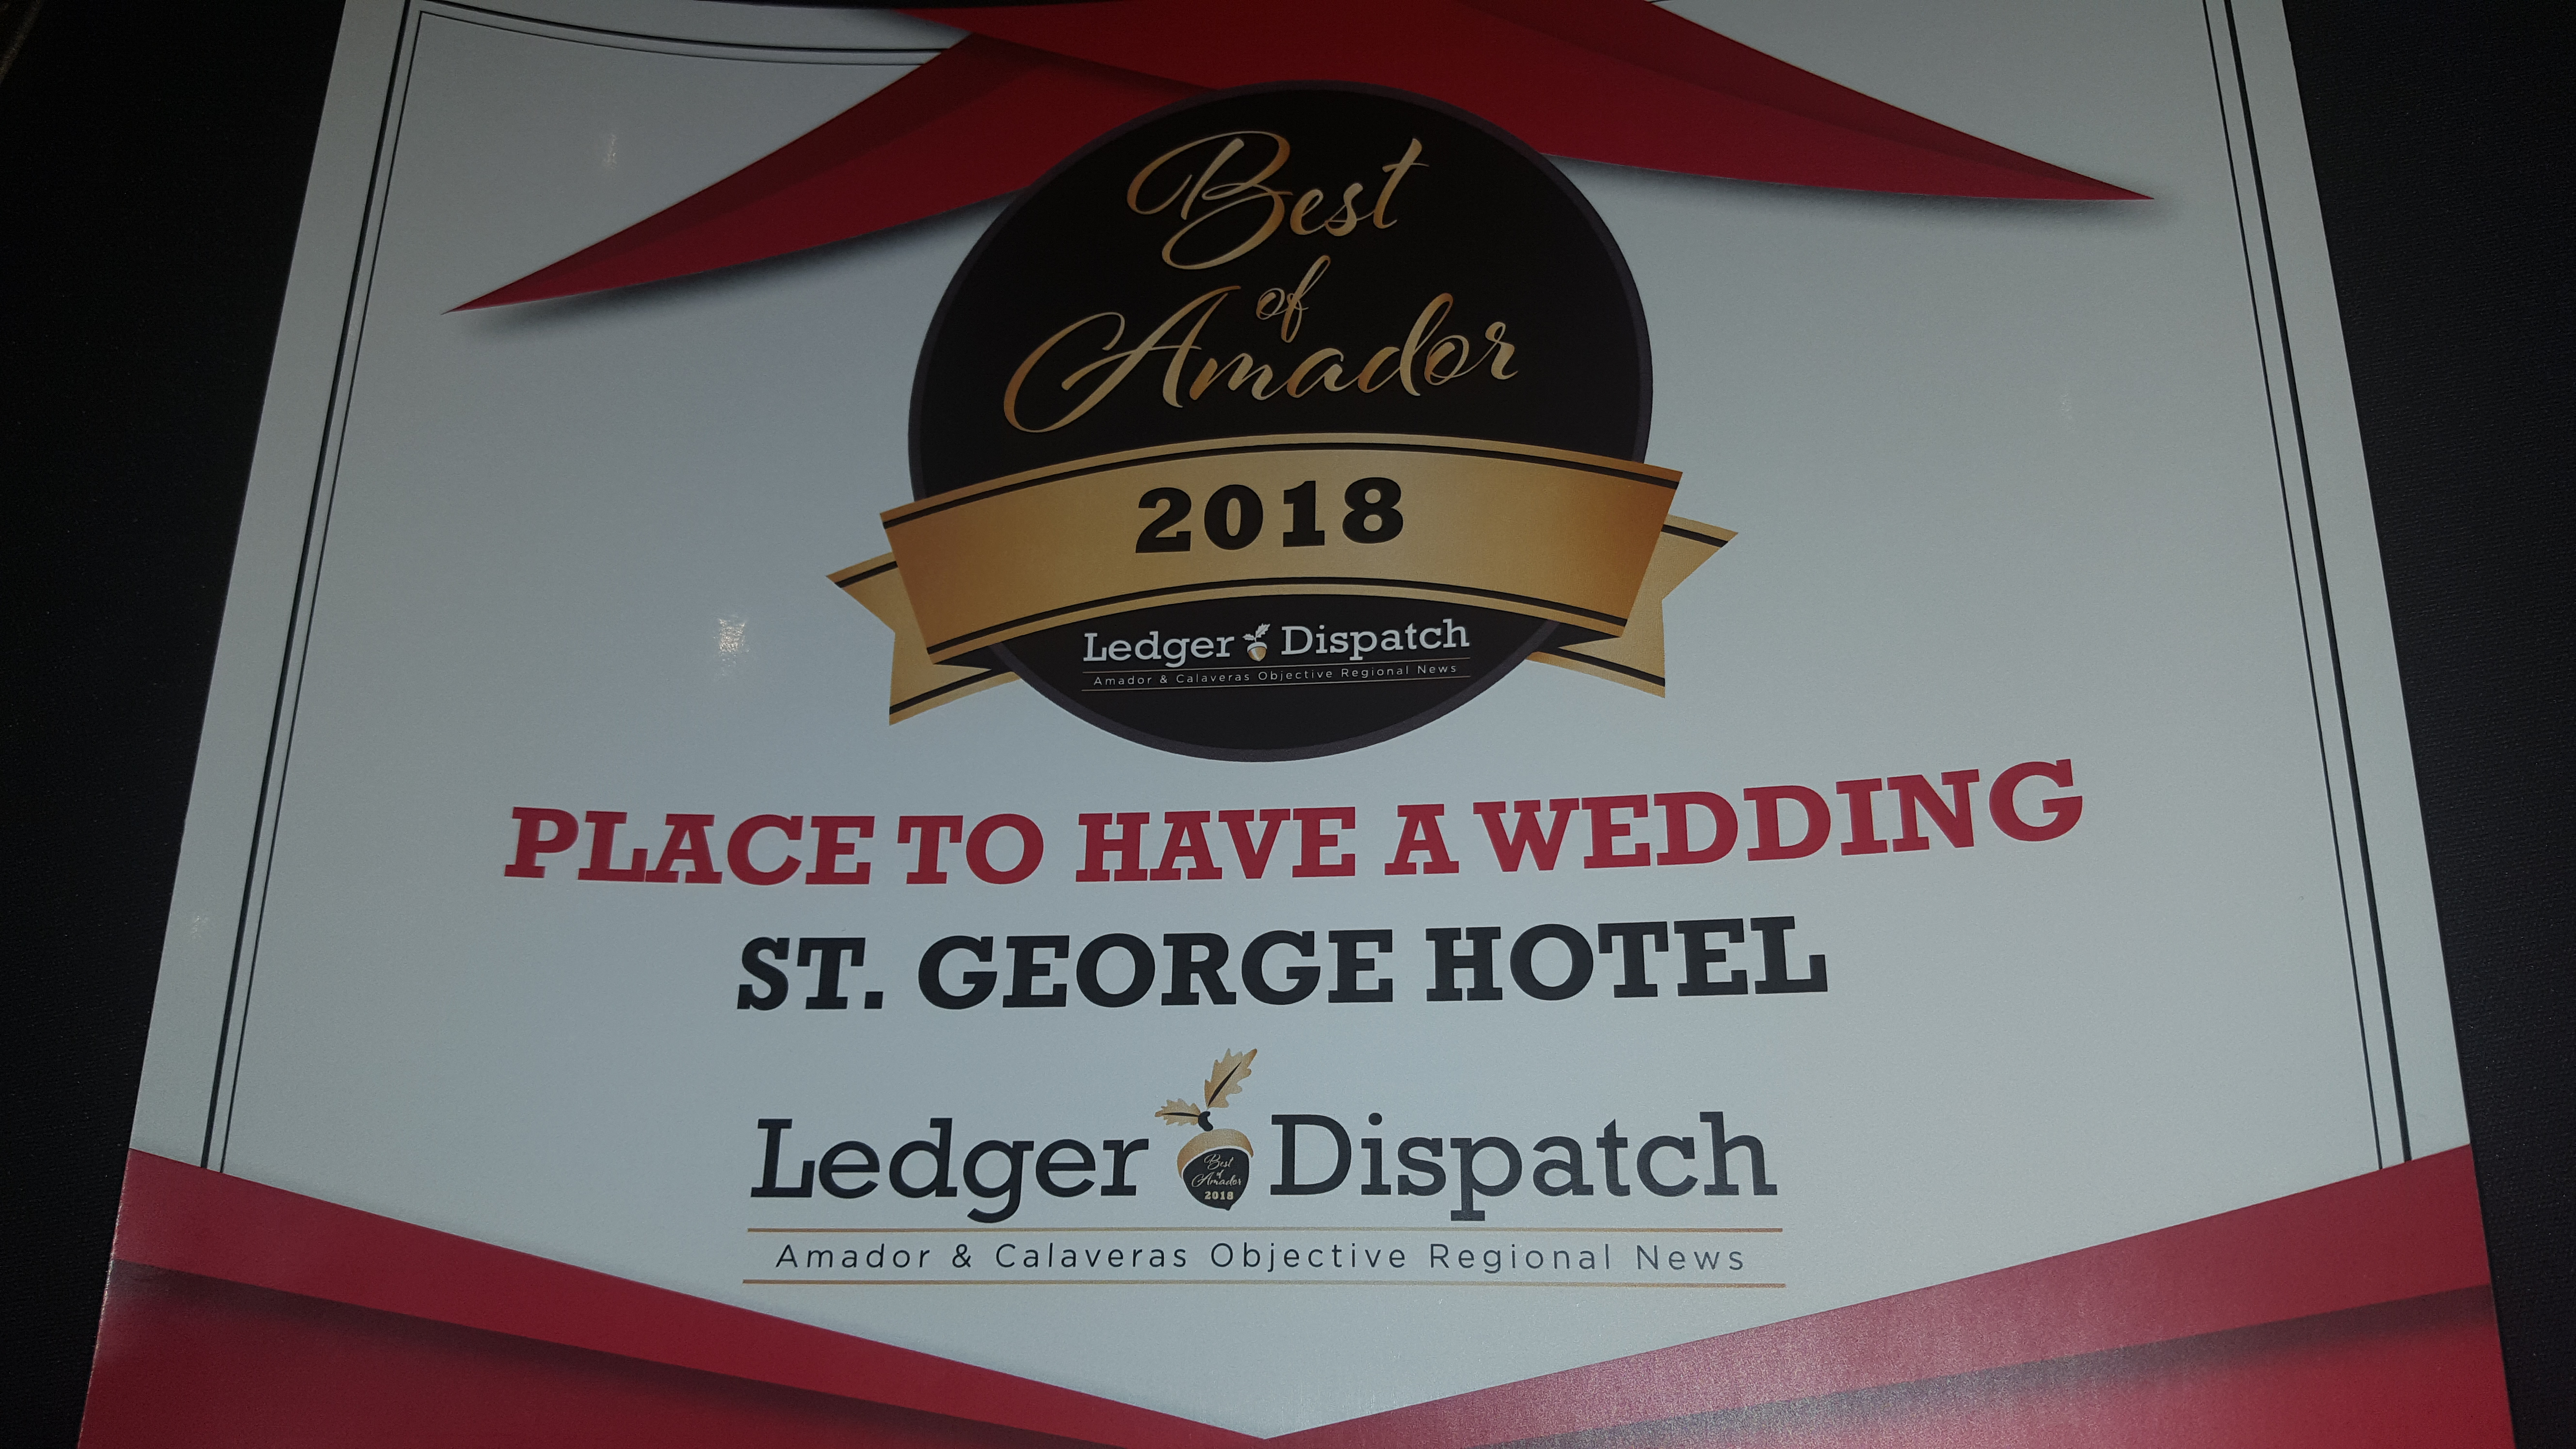 2018 Ledger Dispatch - Best Place in Amador County To Have a Wedding